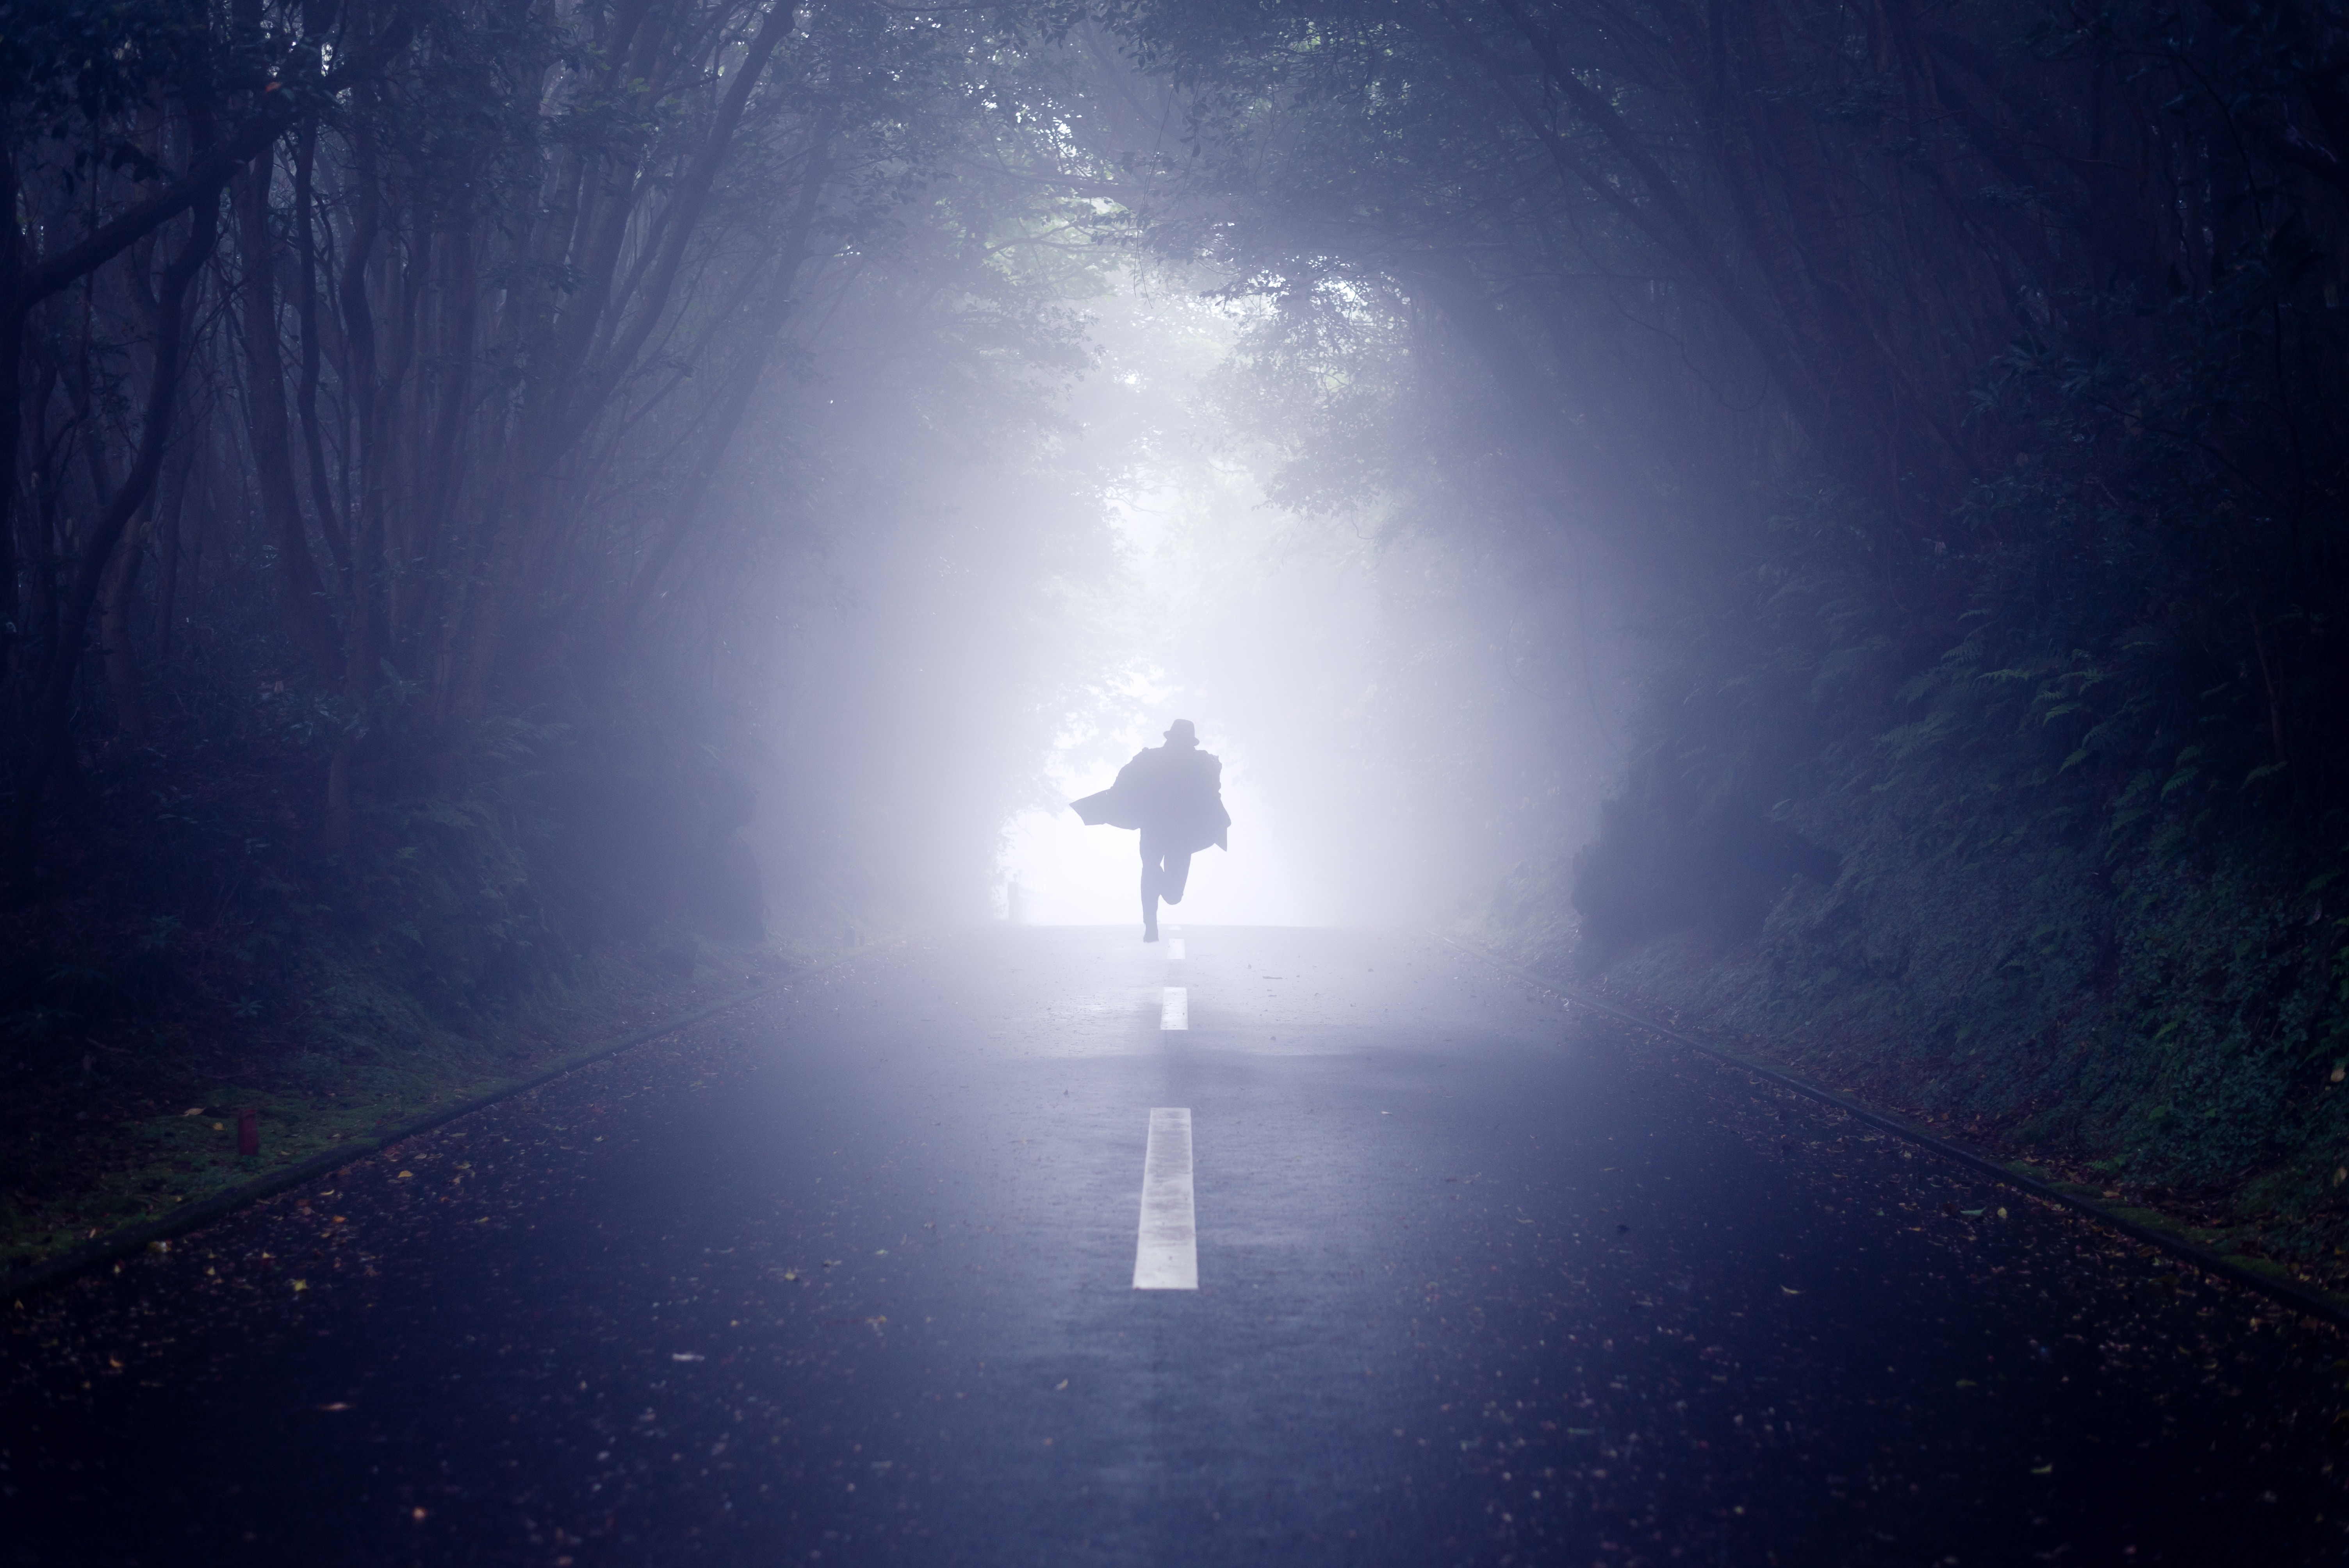 person running on road as a dream